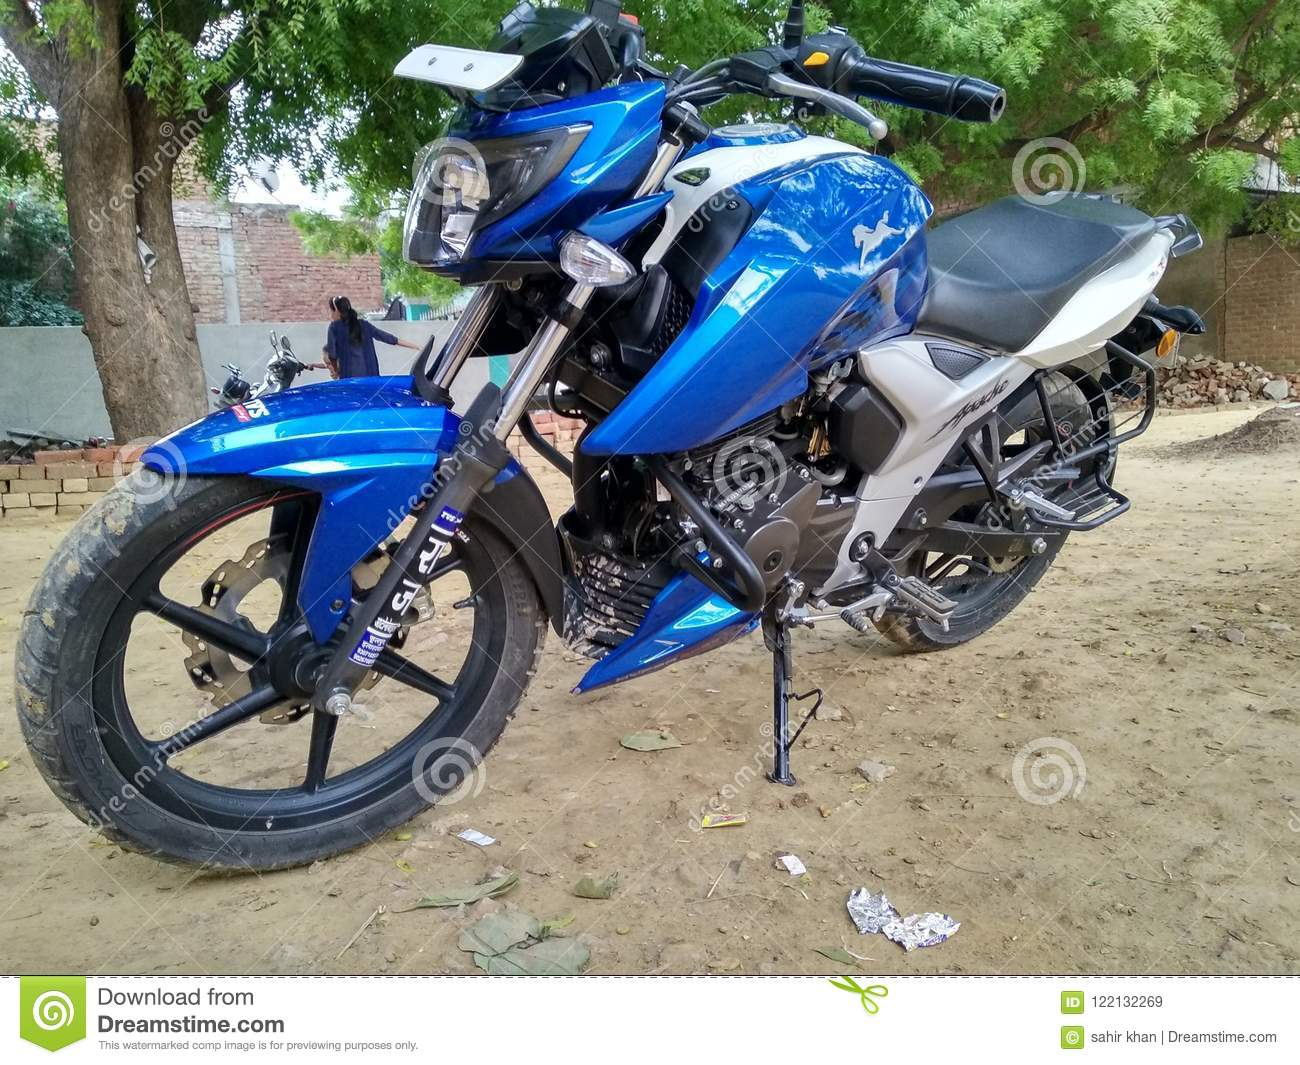 Apache Bike Photos Free Royalty Free Stock Photos From Dreamstime